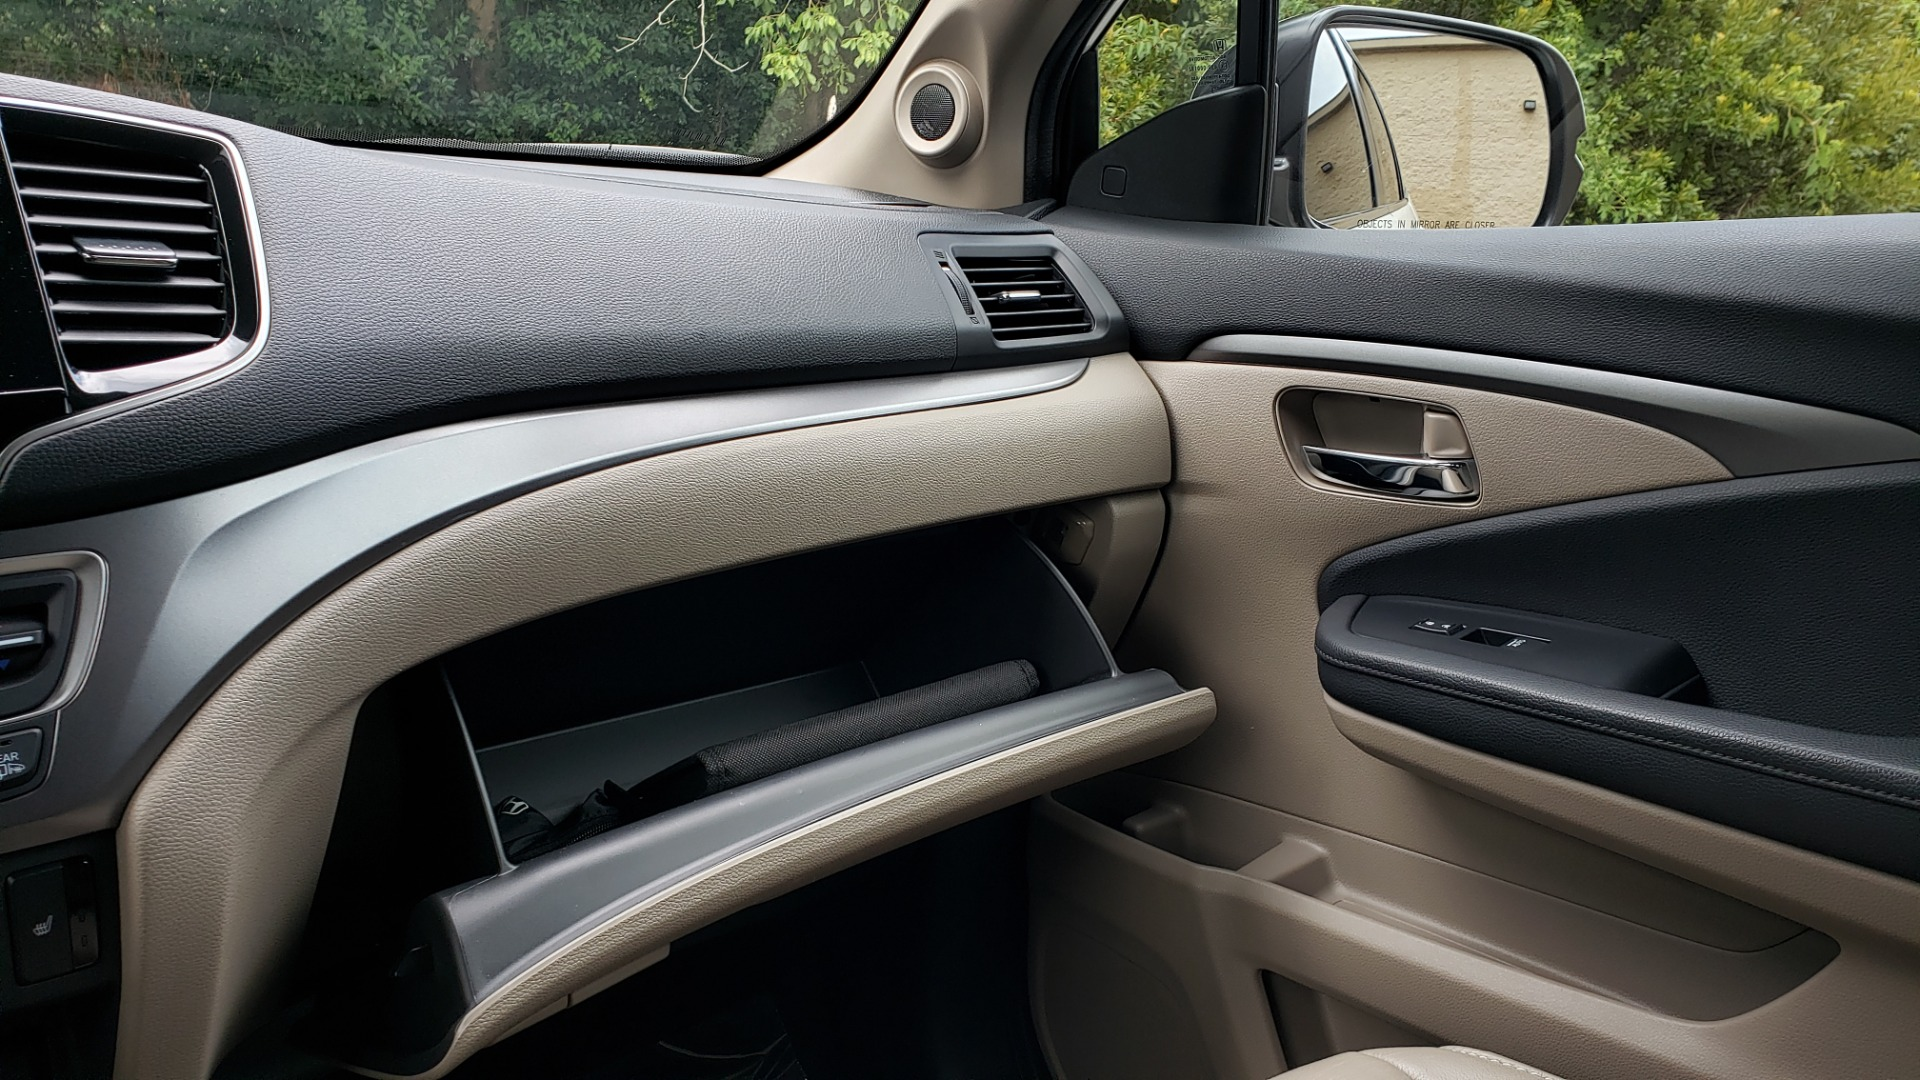 Used 2019 Honda PILOT EX-L / V6 / NAV / SUNROOF / DVD / 3-ROW / REARVIEW for sale Sold at Formula Imports in Charlotte NC 28227 53